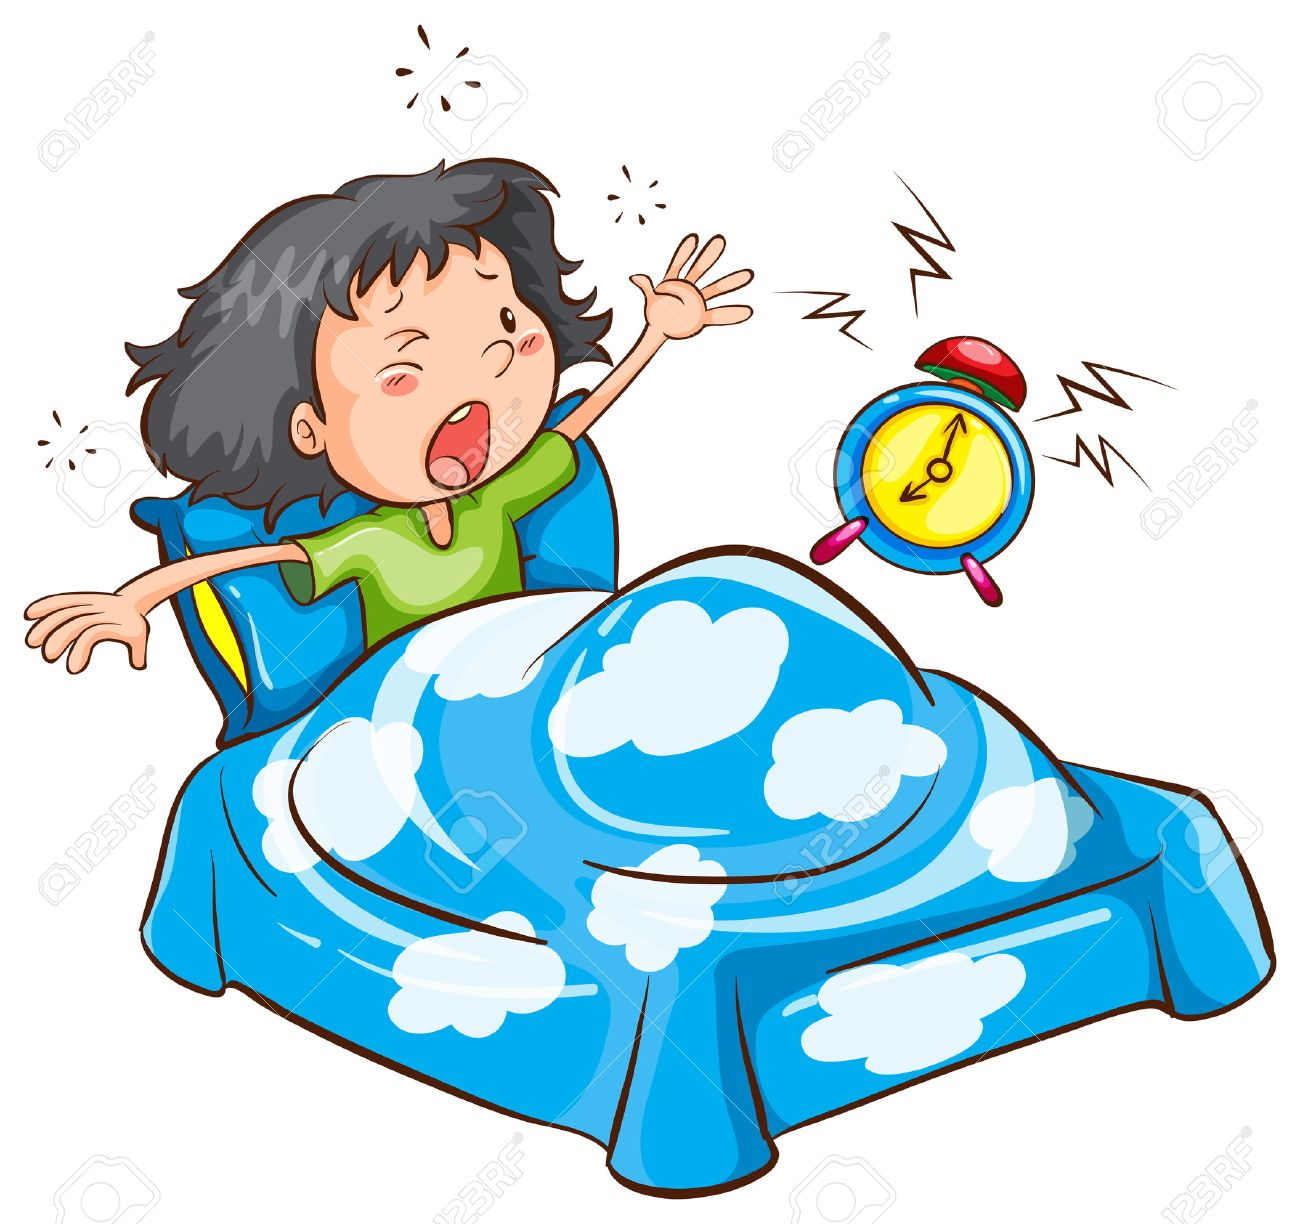 Image result for cartoon images of small girl sleeping with alarm clock